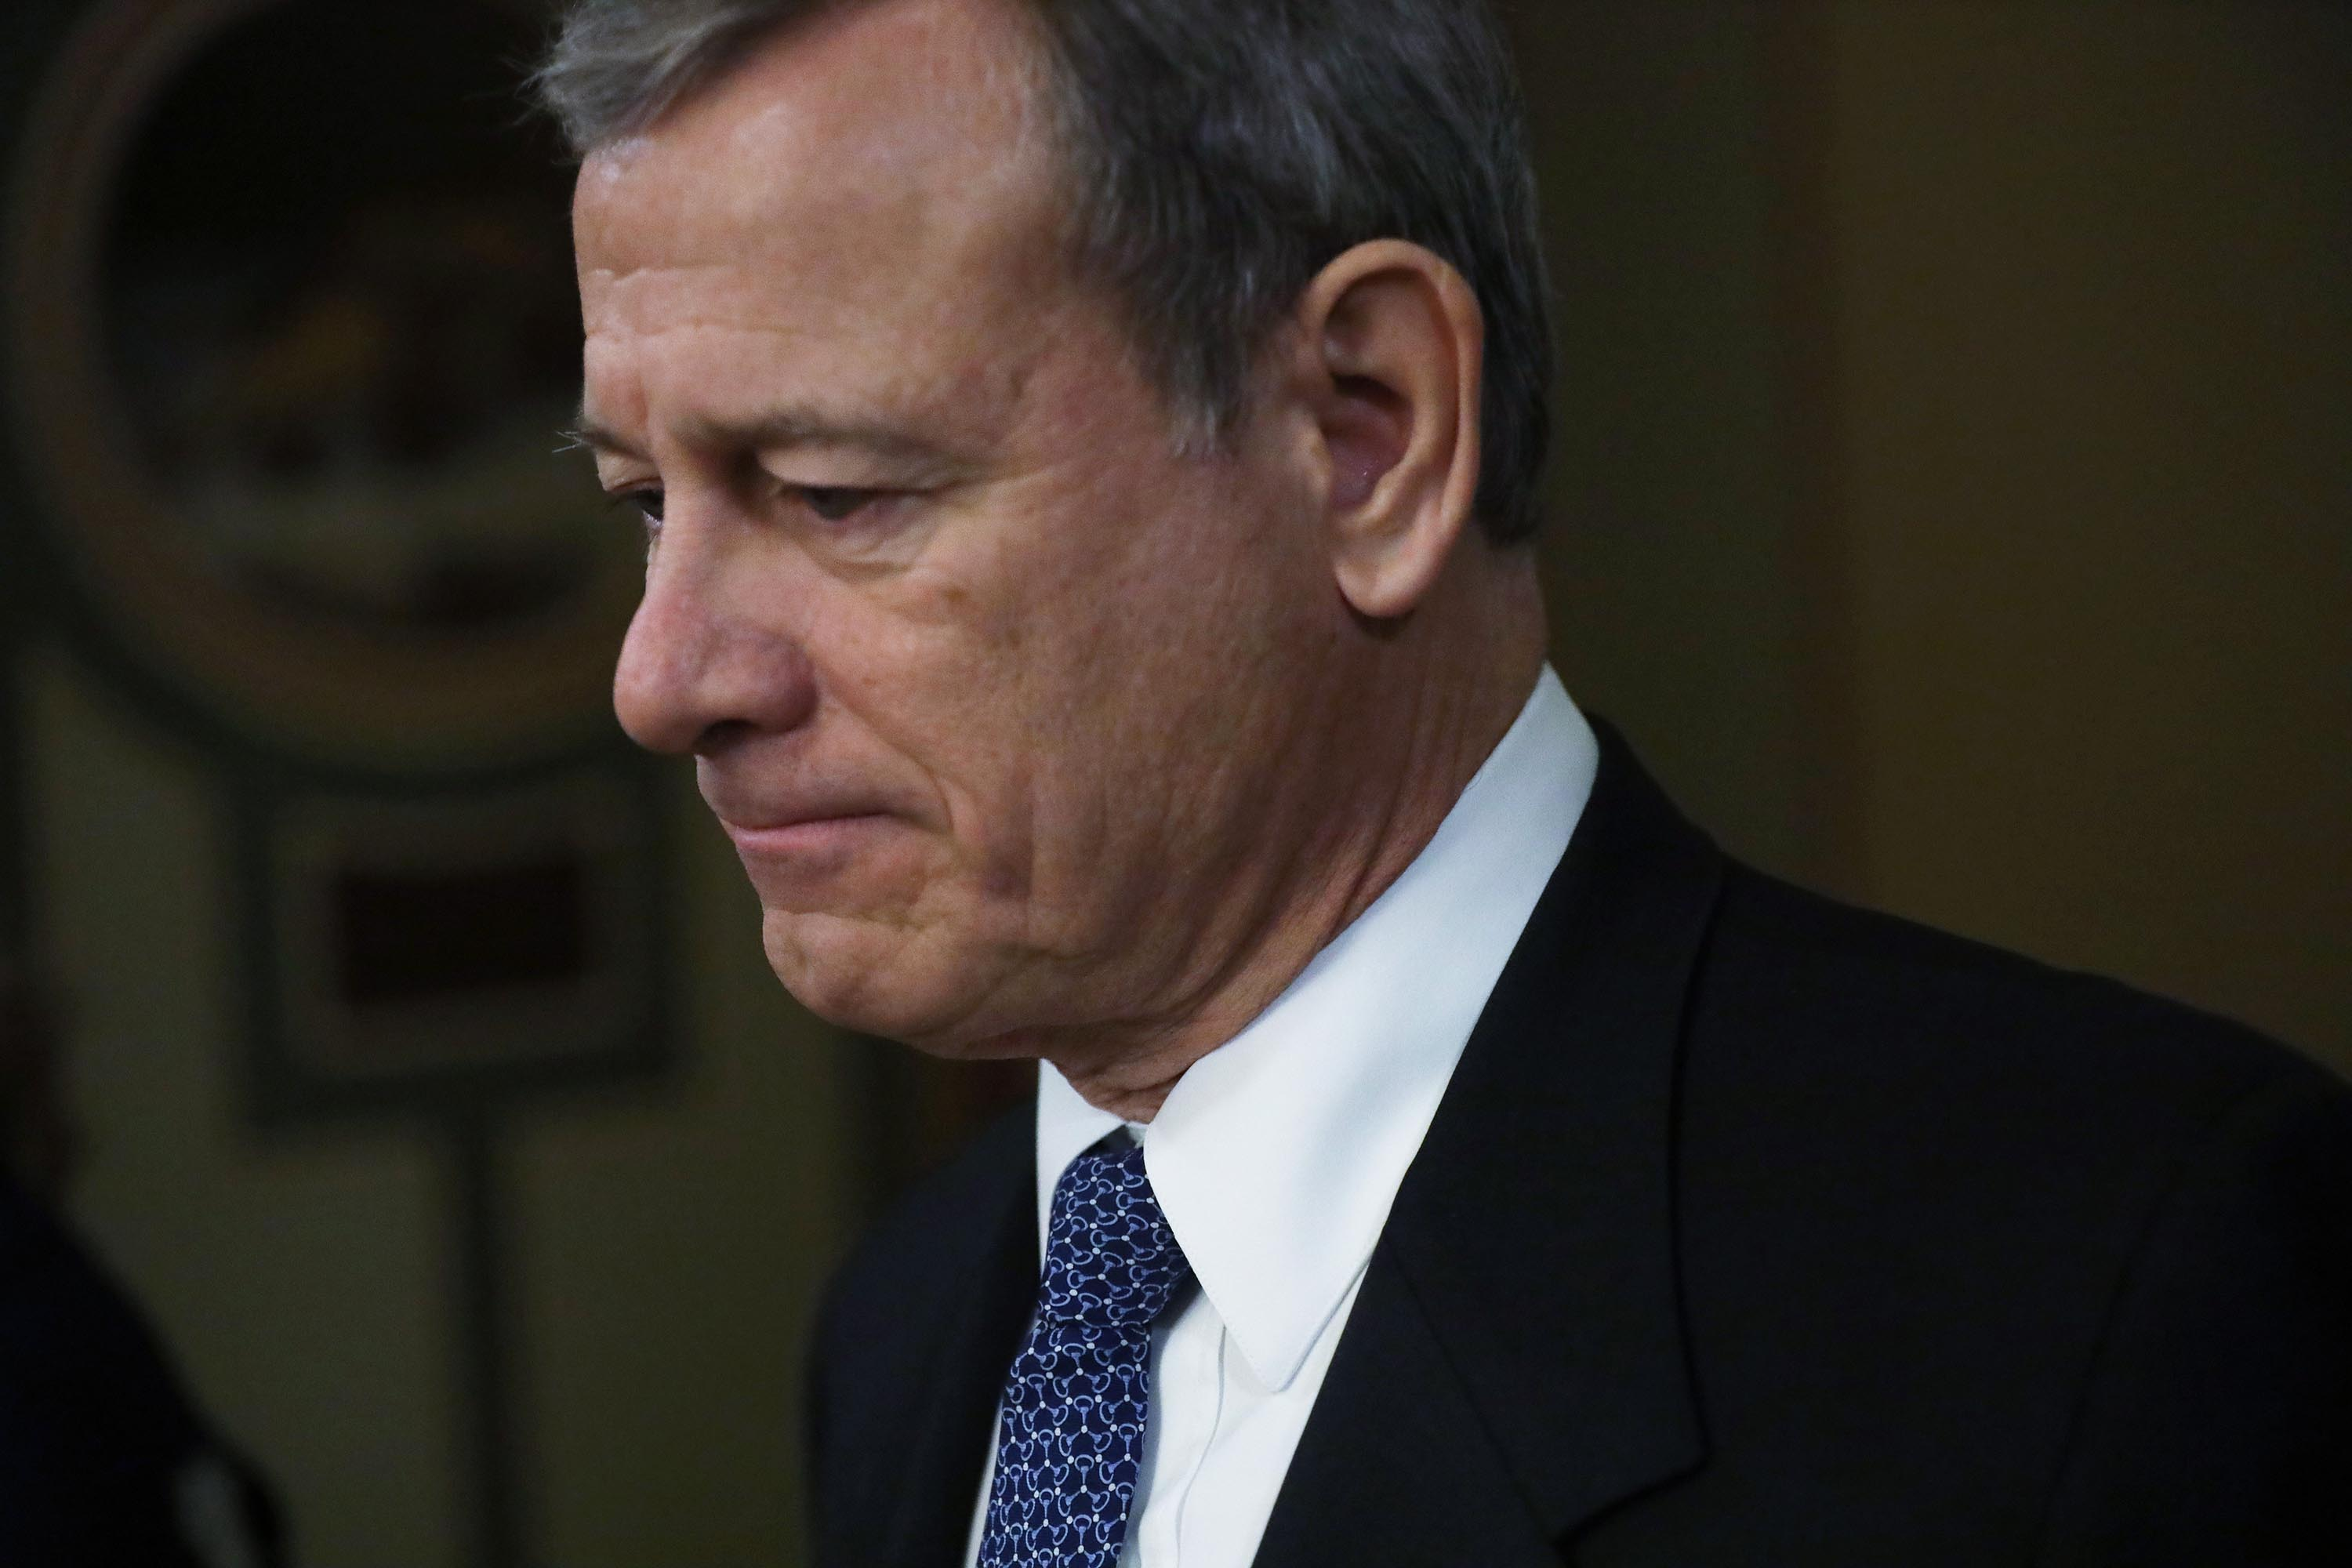 John Roberts has another chance to diminish the Voting Rights Act